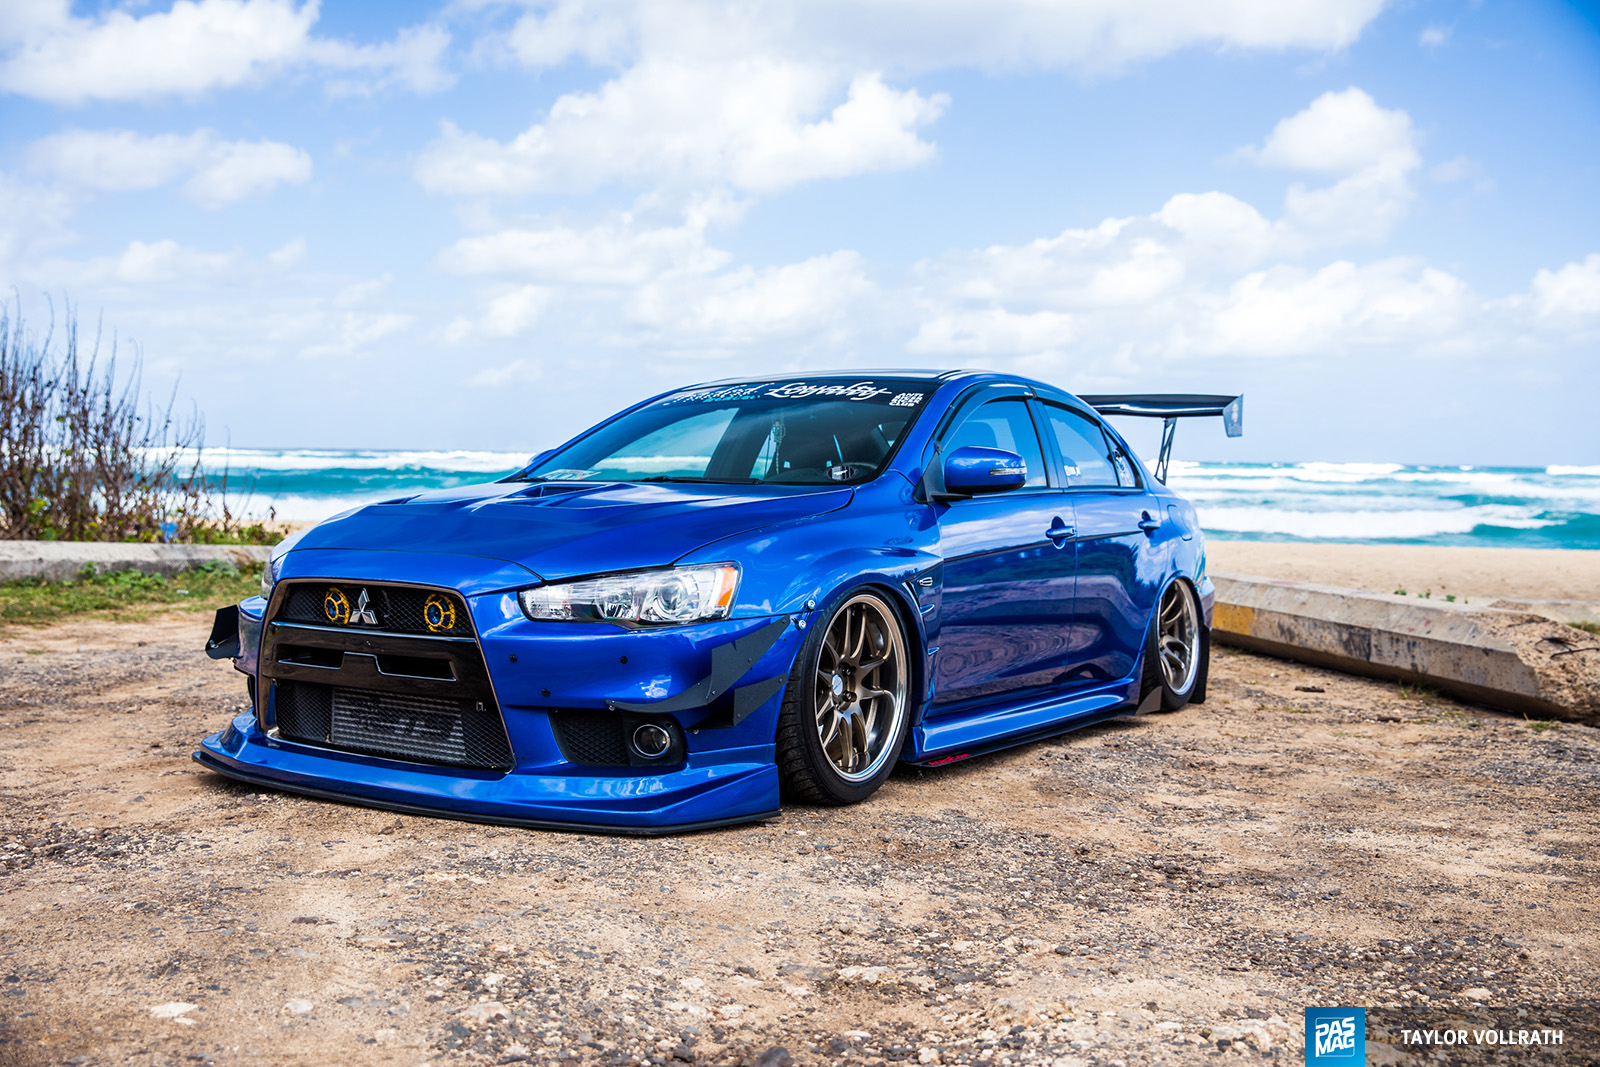 01 JM Andrada 2015 Mitsubishi Evolution X PASMAG Tuner Battlegrounds